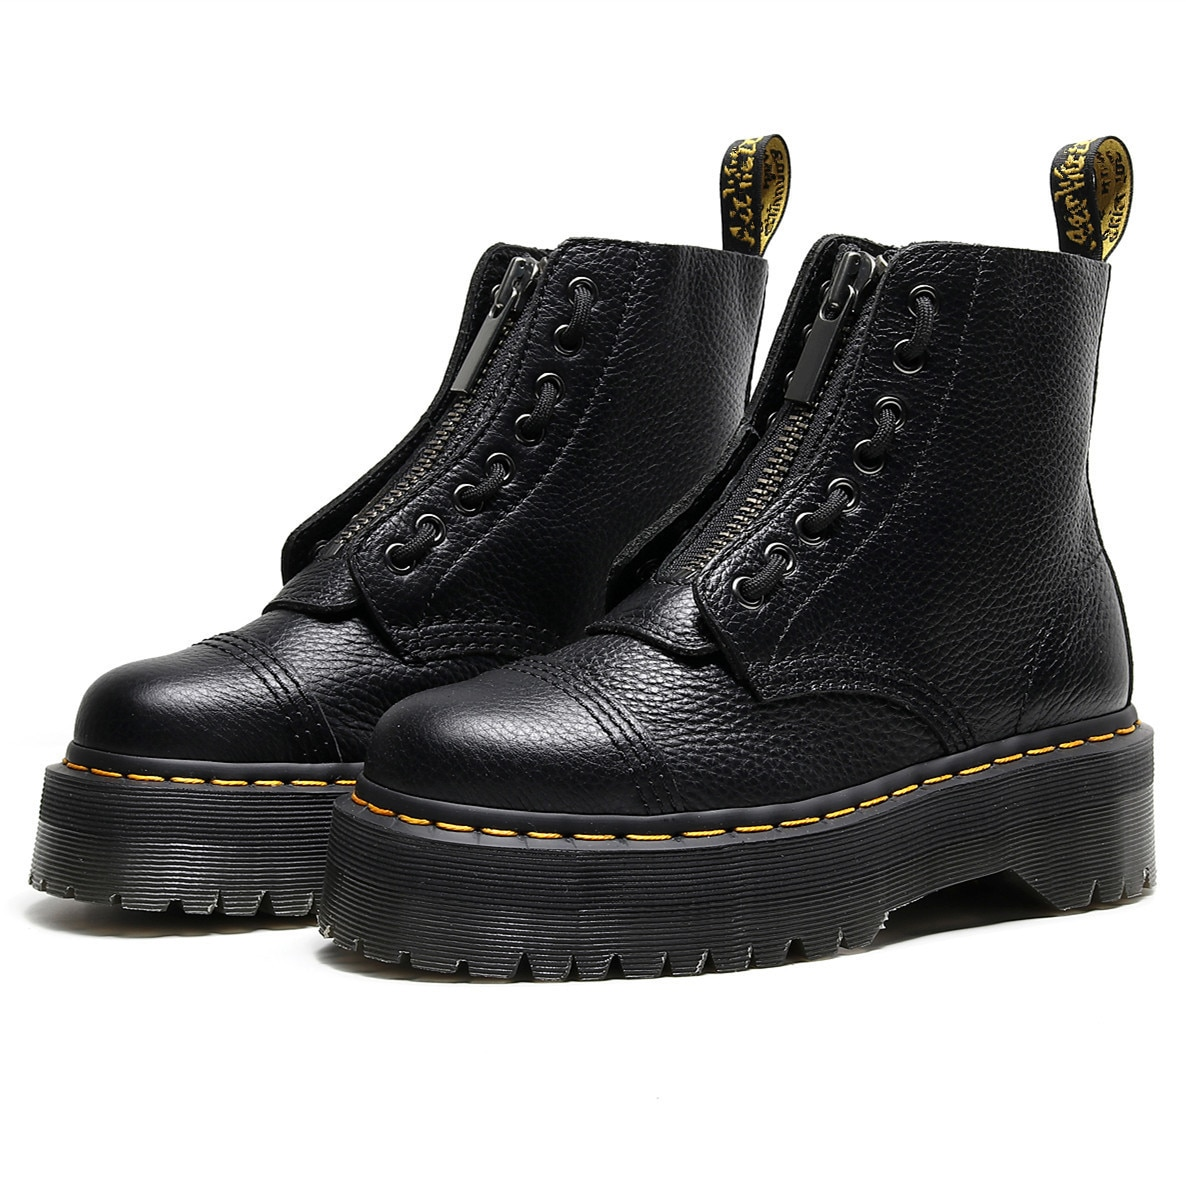 prova perfetto punk style women ankle boots special two kinds of wear rivet studded martin boots lace up genuine leather botas 2021 Leather Zipper Martin Boots Ankle Leather Shoes Women Boots Motorcycle Boots British Couple Boots Zapatos Mujer Botas